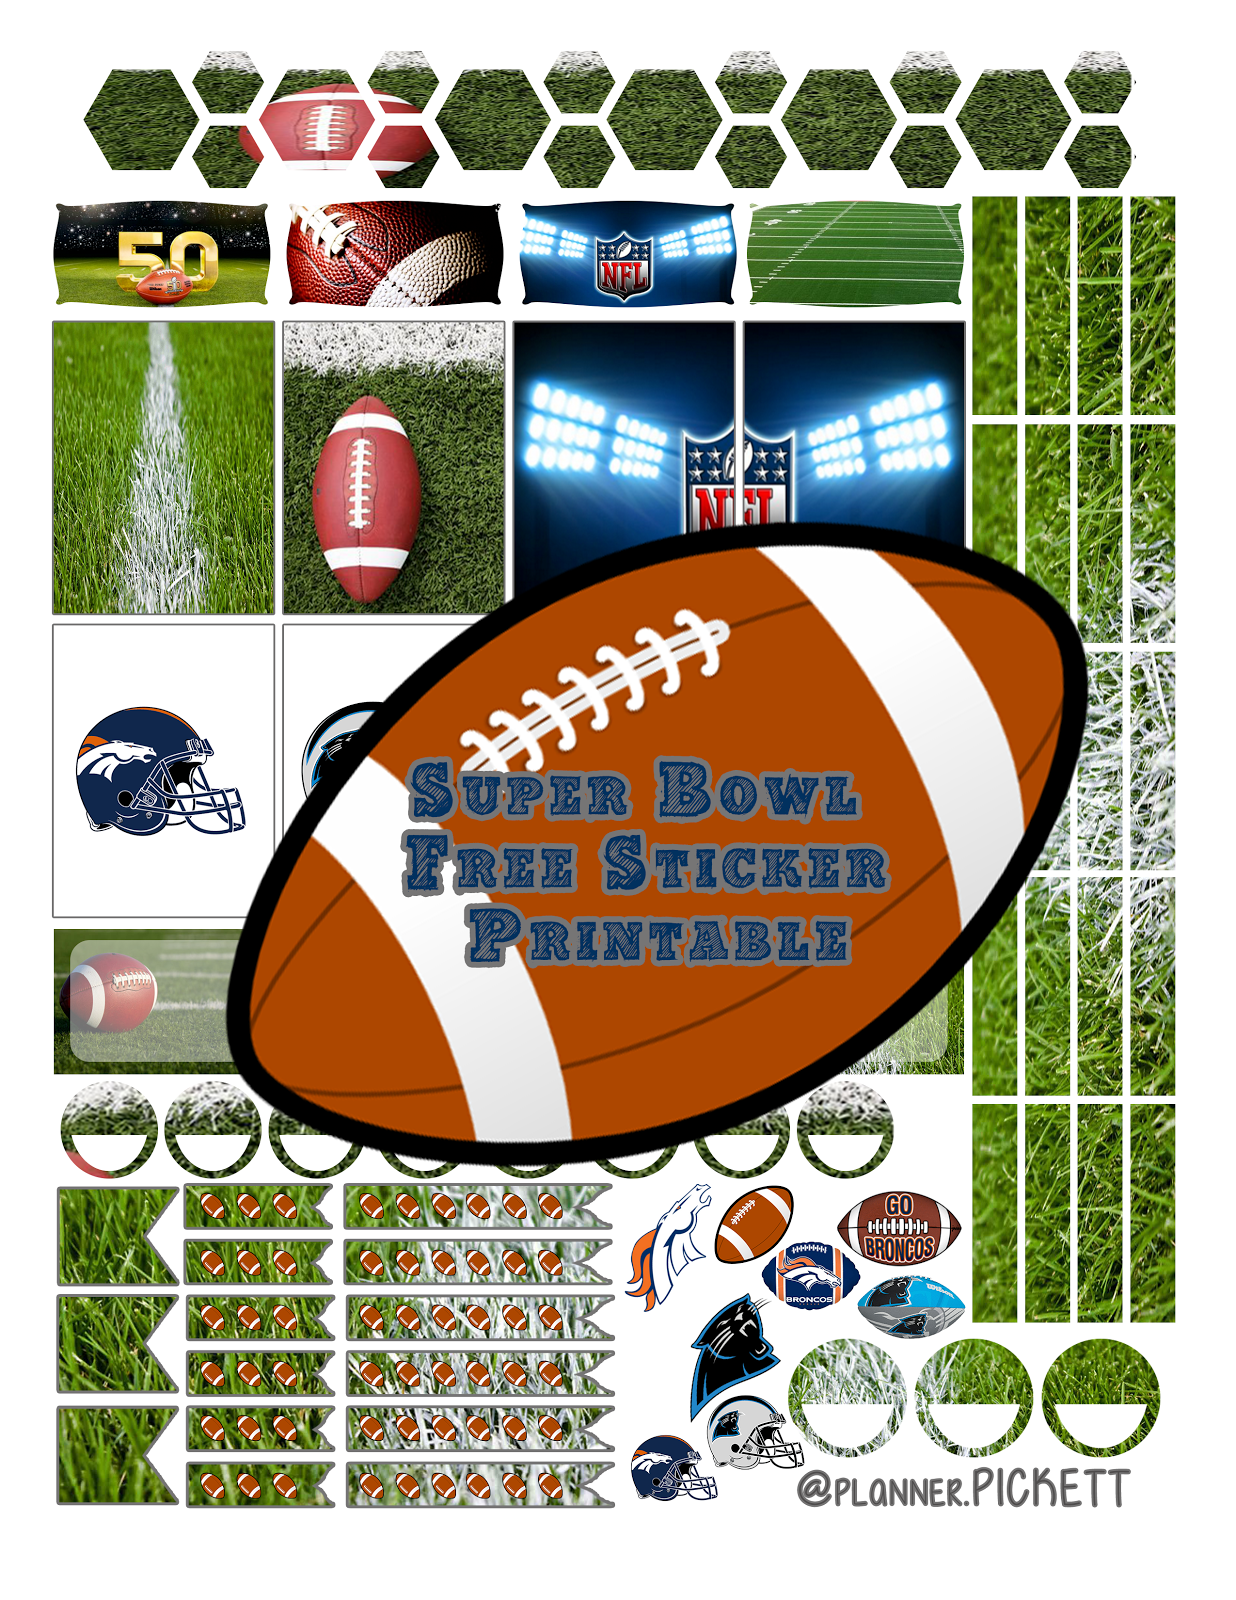 Printable superbowl stickers @planner.PICKETT: Super Bowl 50 Free Planner Stickers